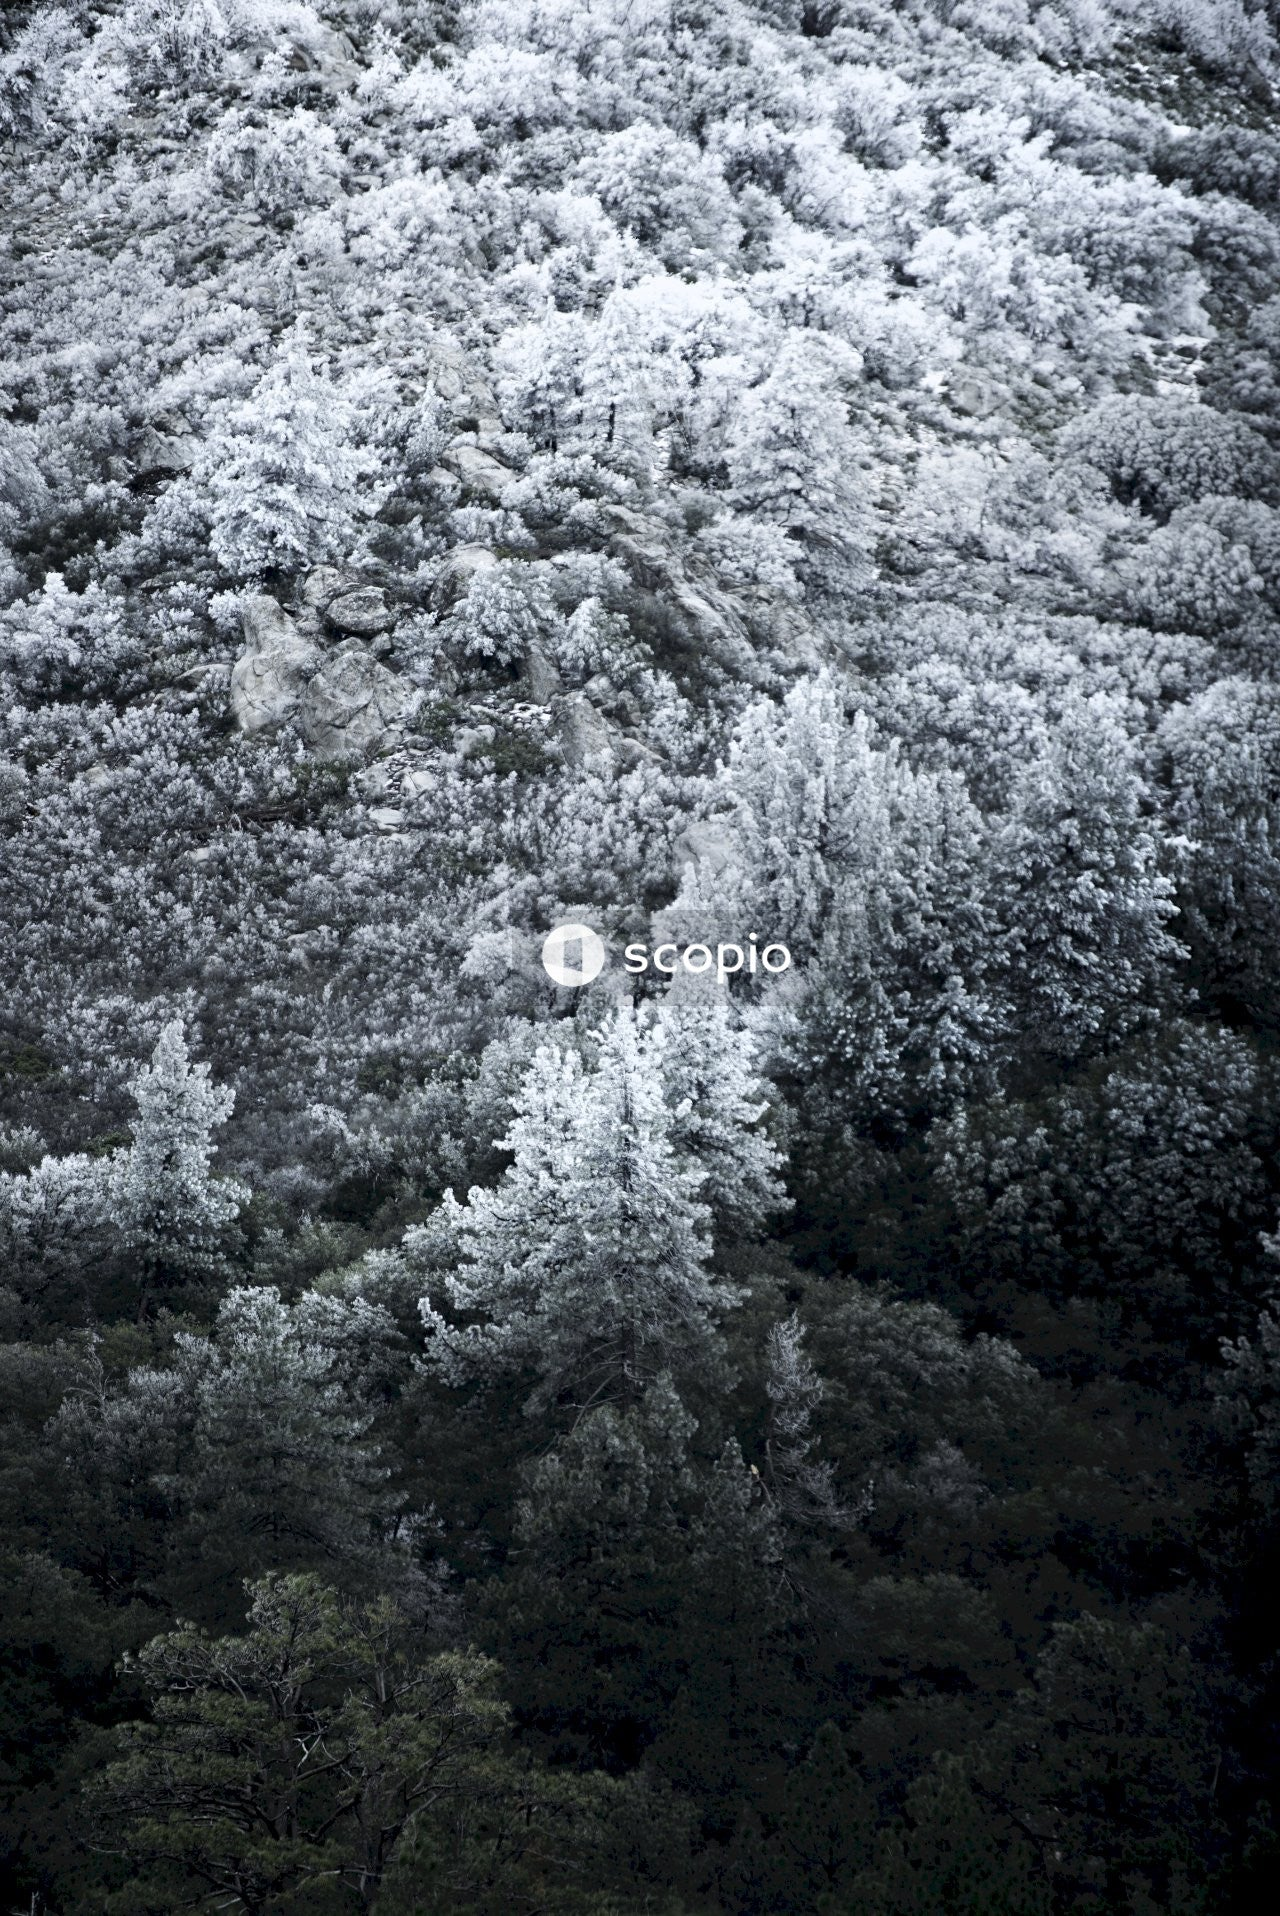 A black and white of pine trees and shrubbery